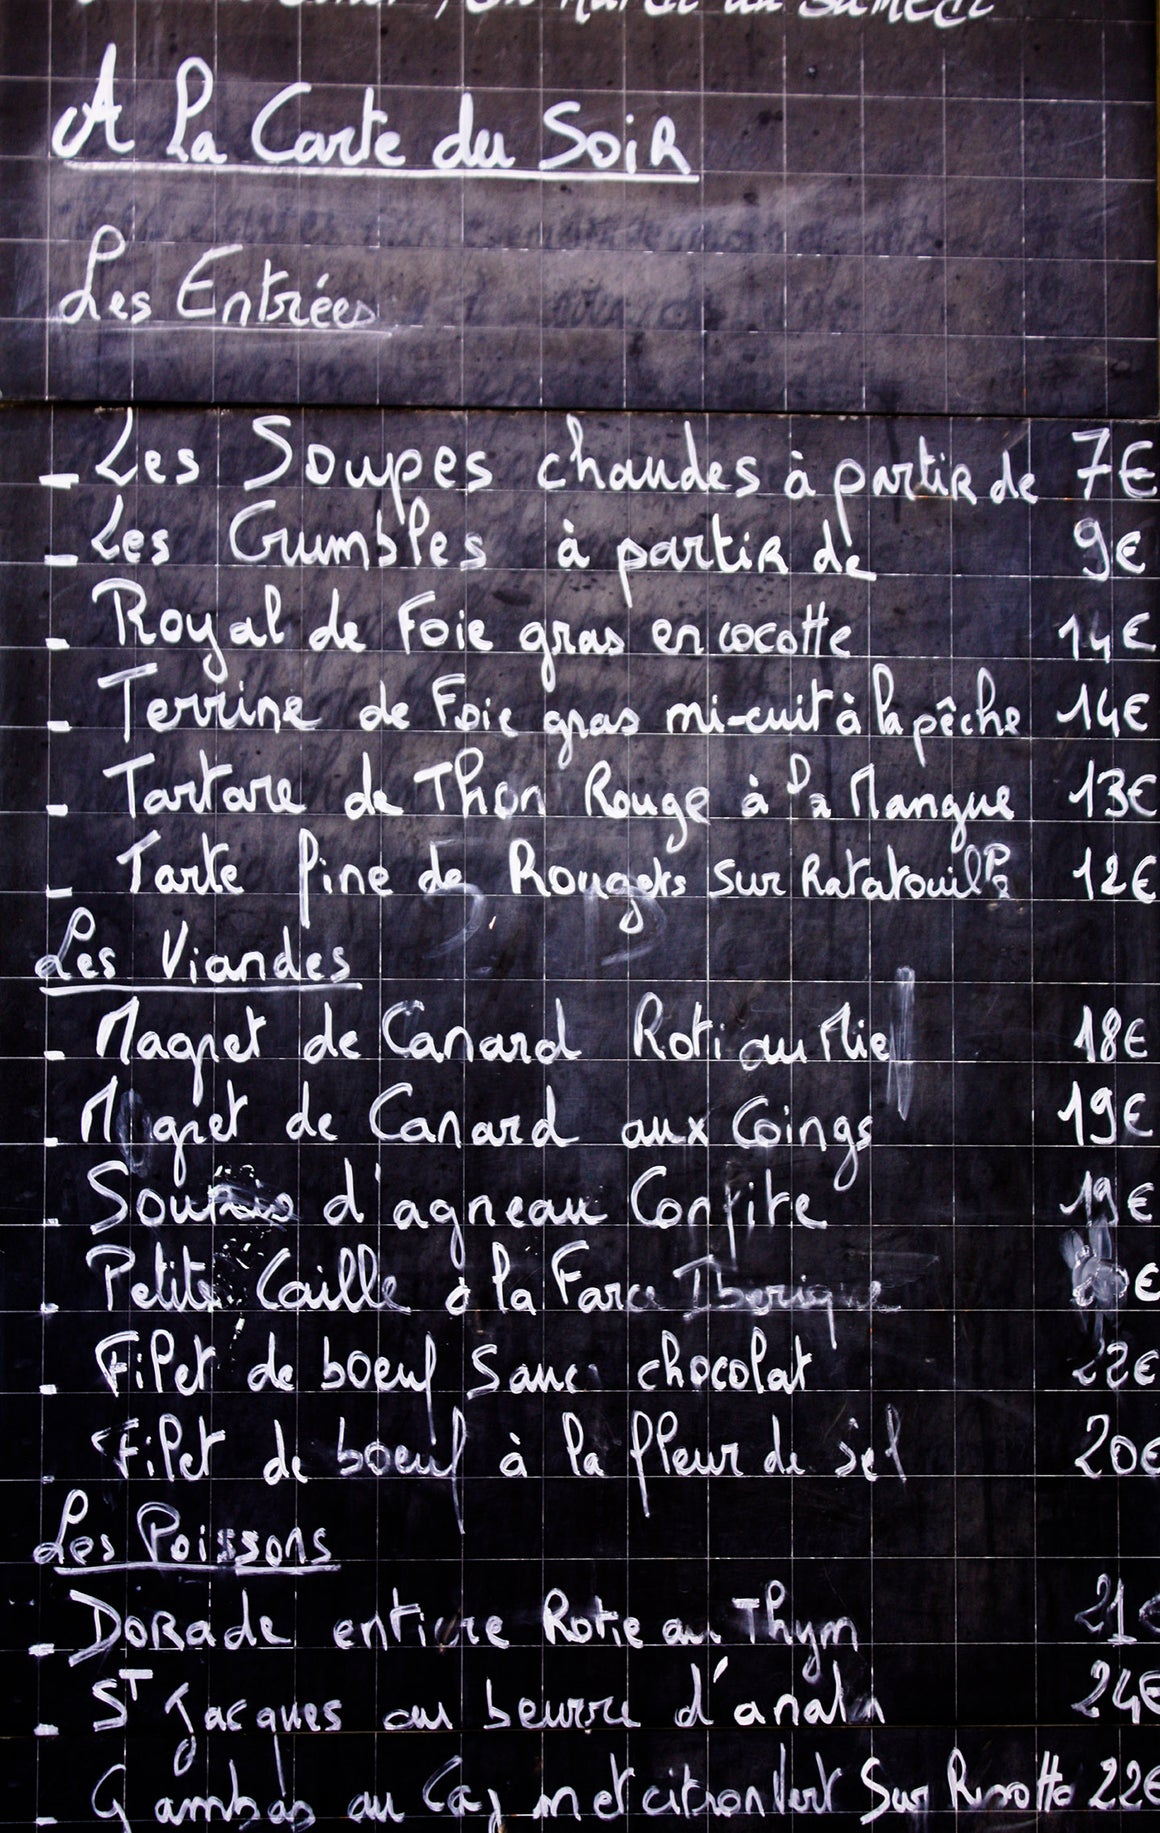 Classic French Menu France - Every Day Paris